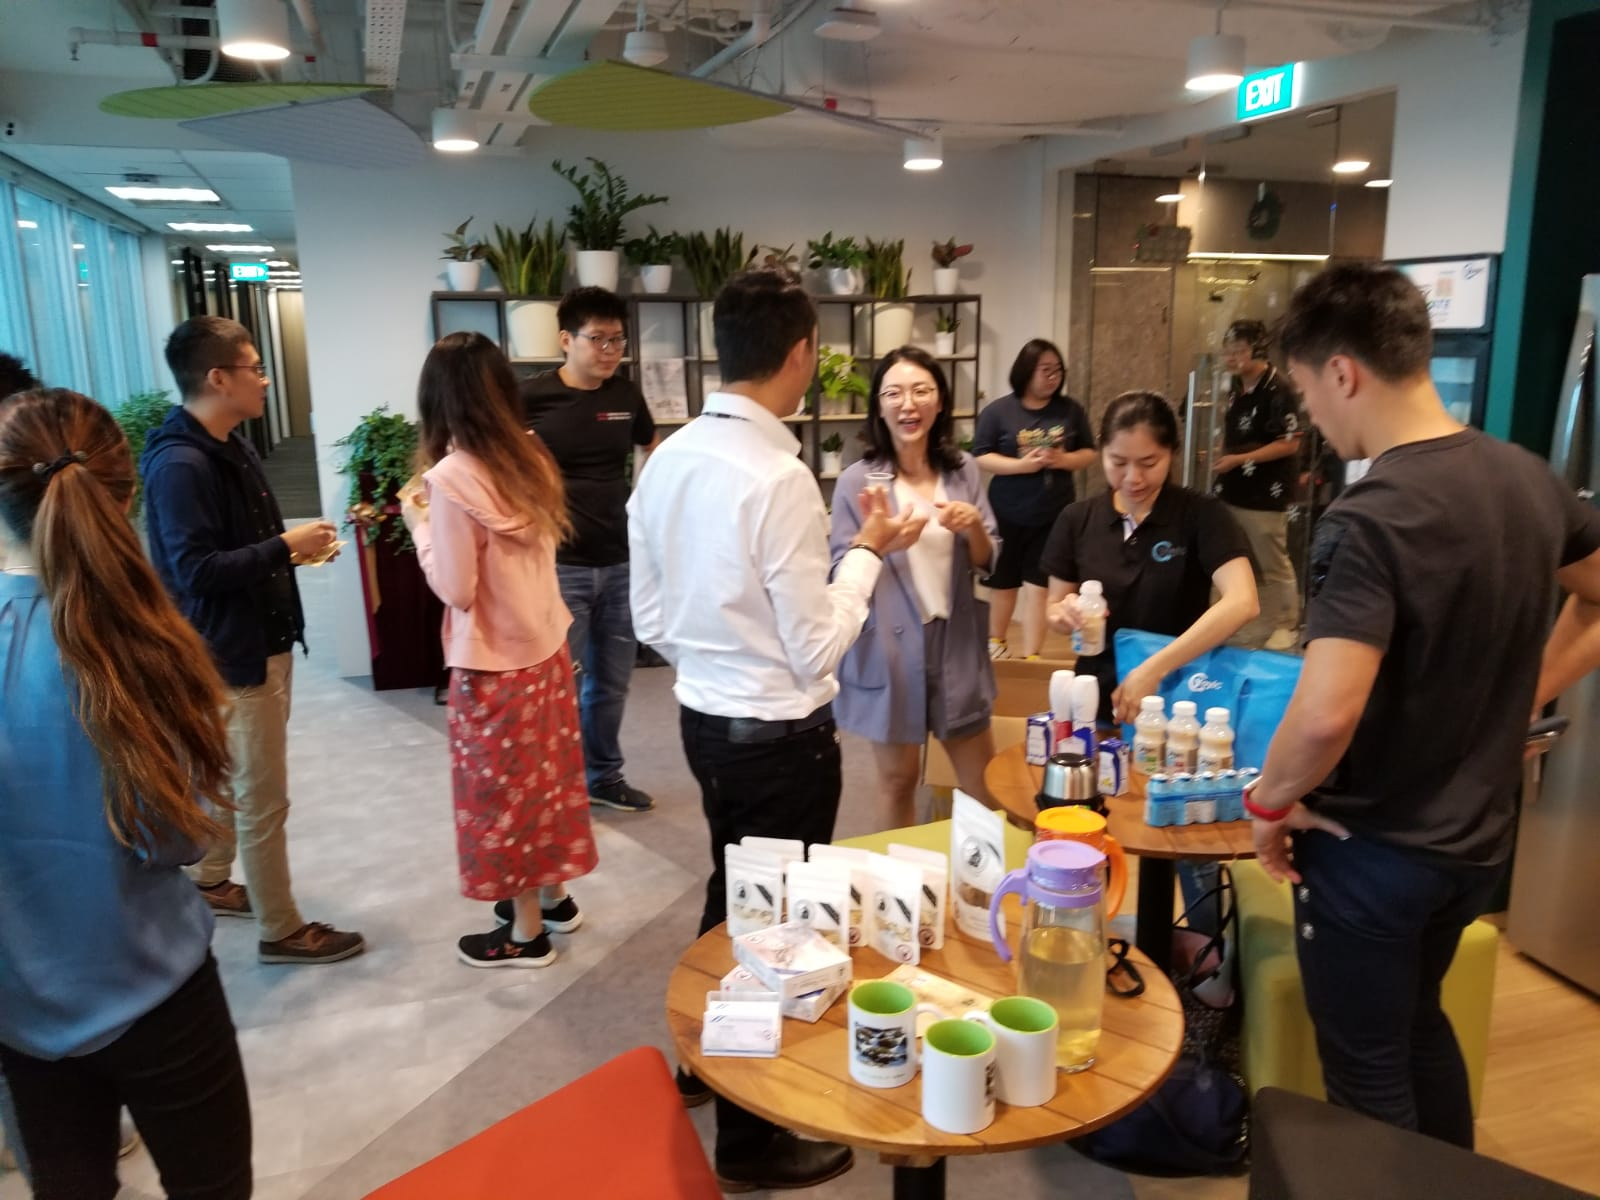 Ginseng and Yogurt tasting